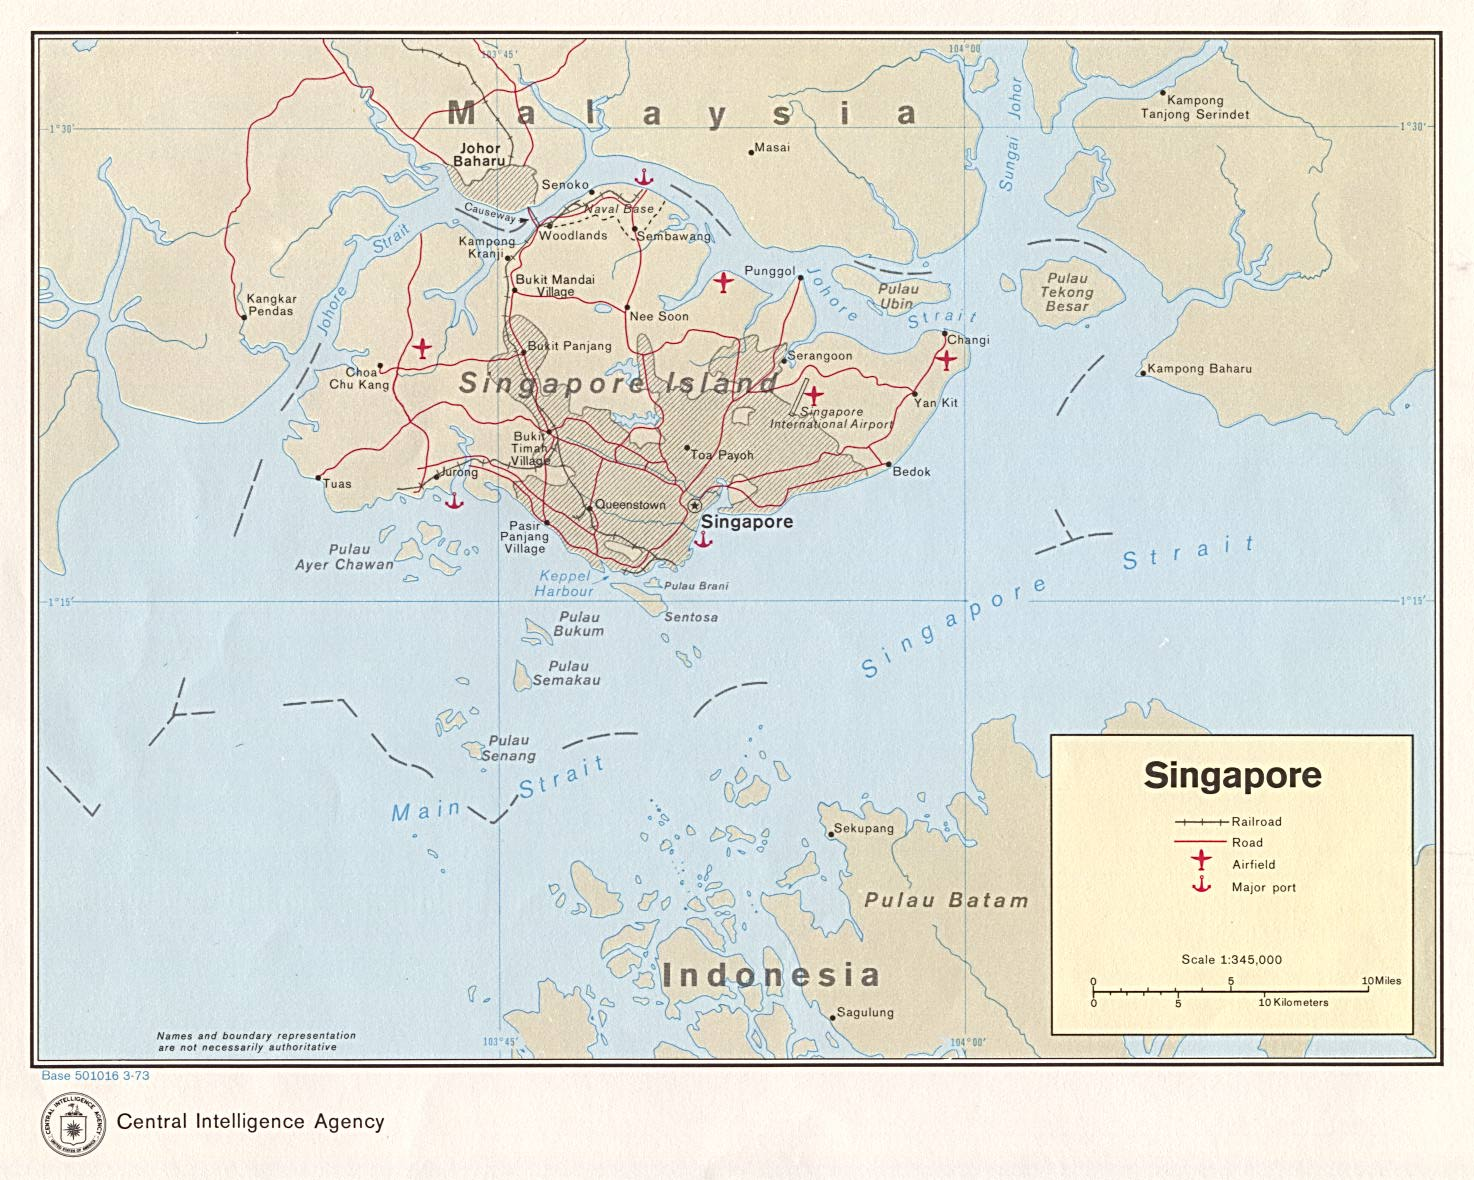 detailed_political_and_road_map_of_singapore.jpg